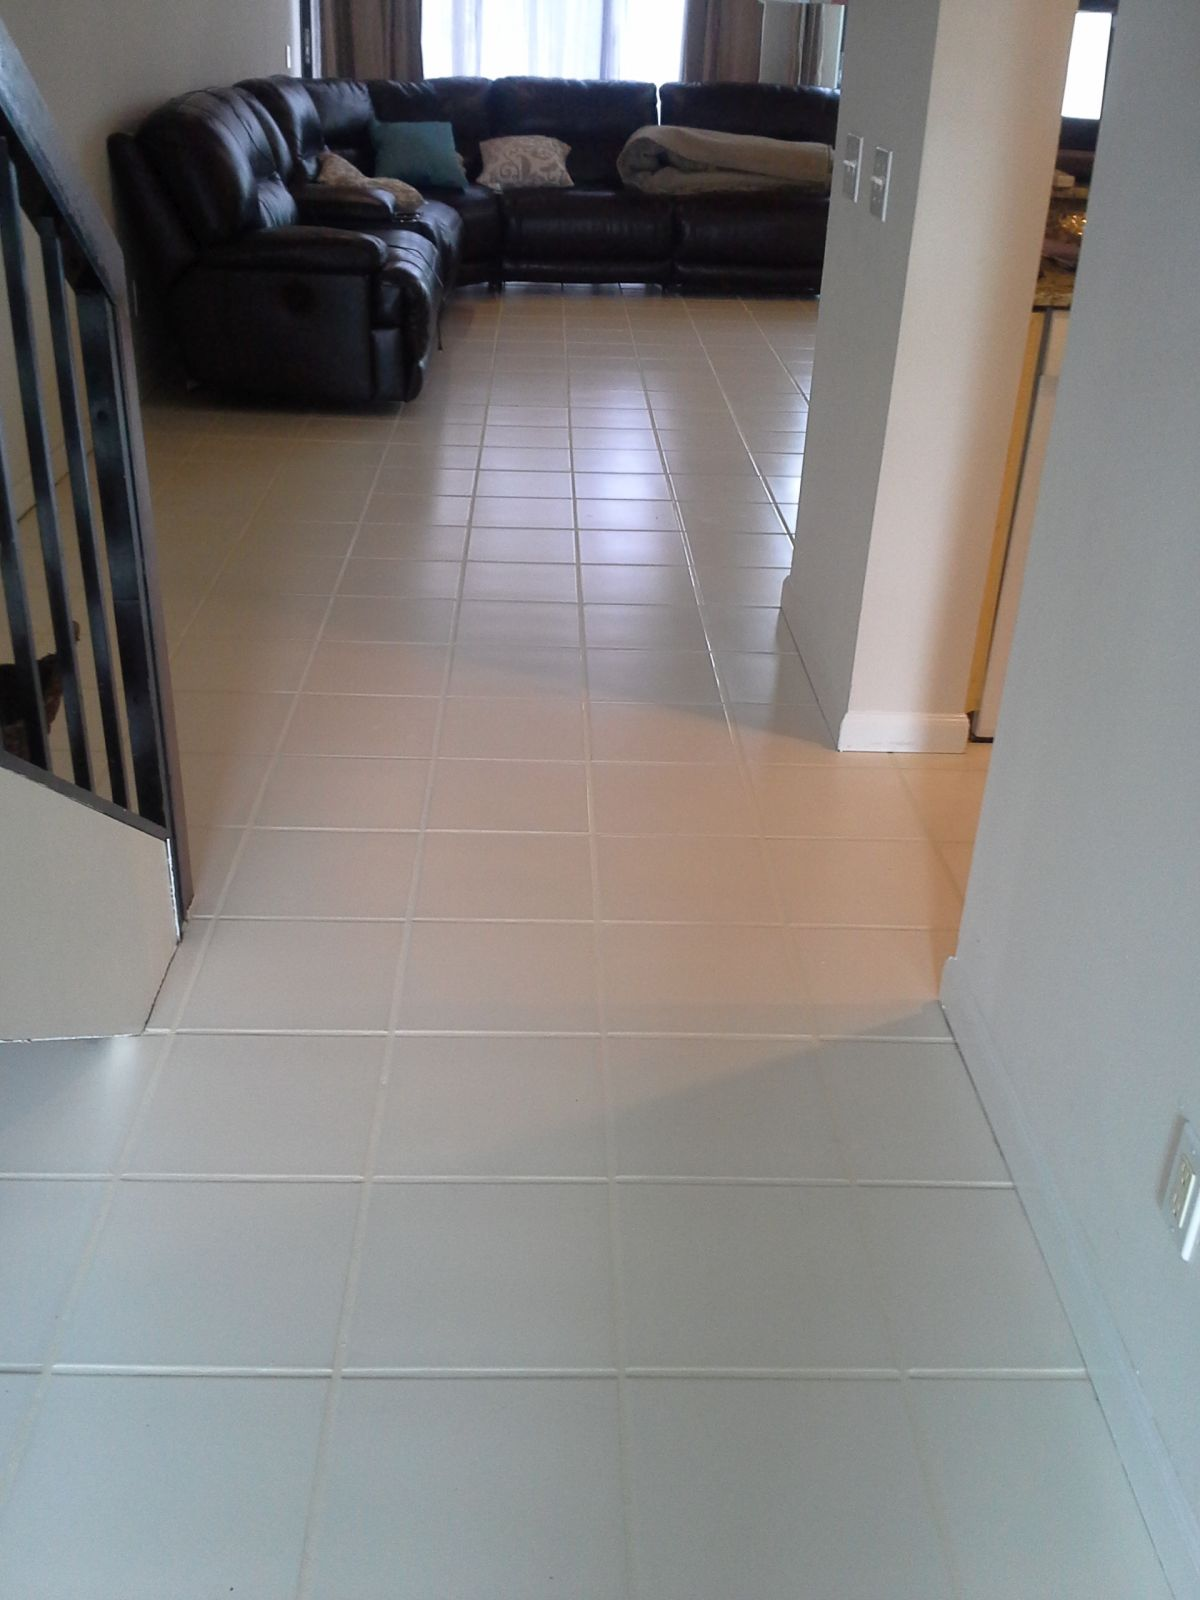 Tile installation south florida flooring contractor installation tile installation and remodeling contractor 001 dailygadgetfo Choice Image